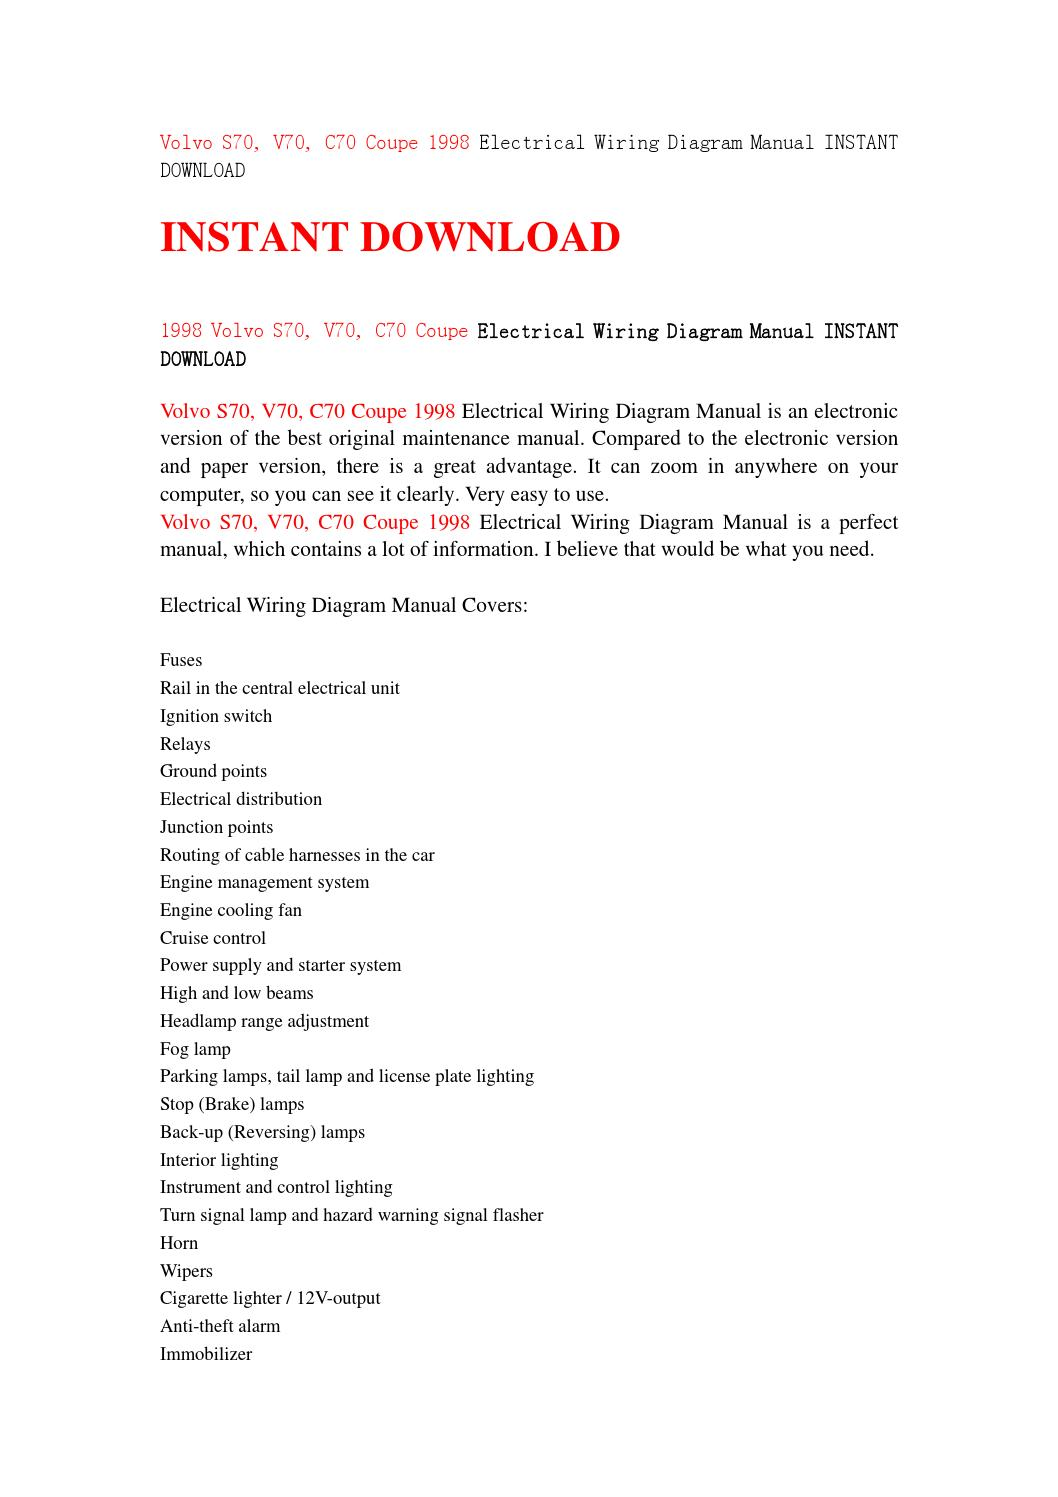 Volvo S70 V70 C70 Coupe 1998 Electrical Wiring Diagram Manual Instant Download By Servicemanuald89s Issuu